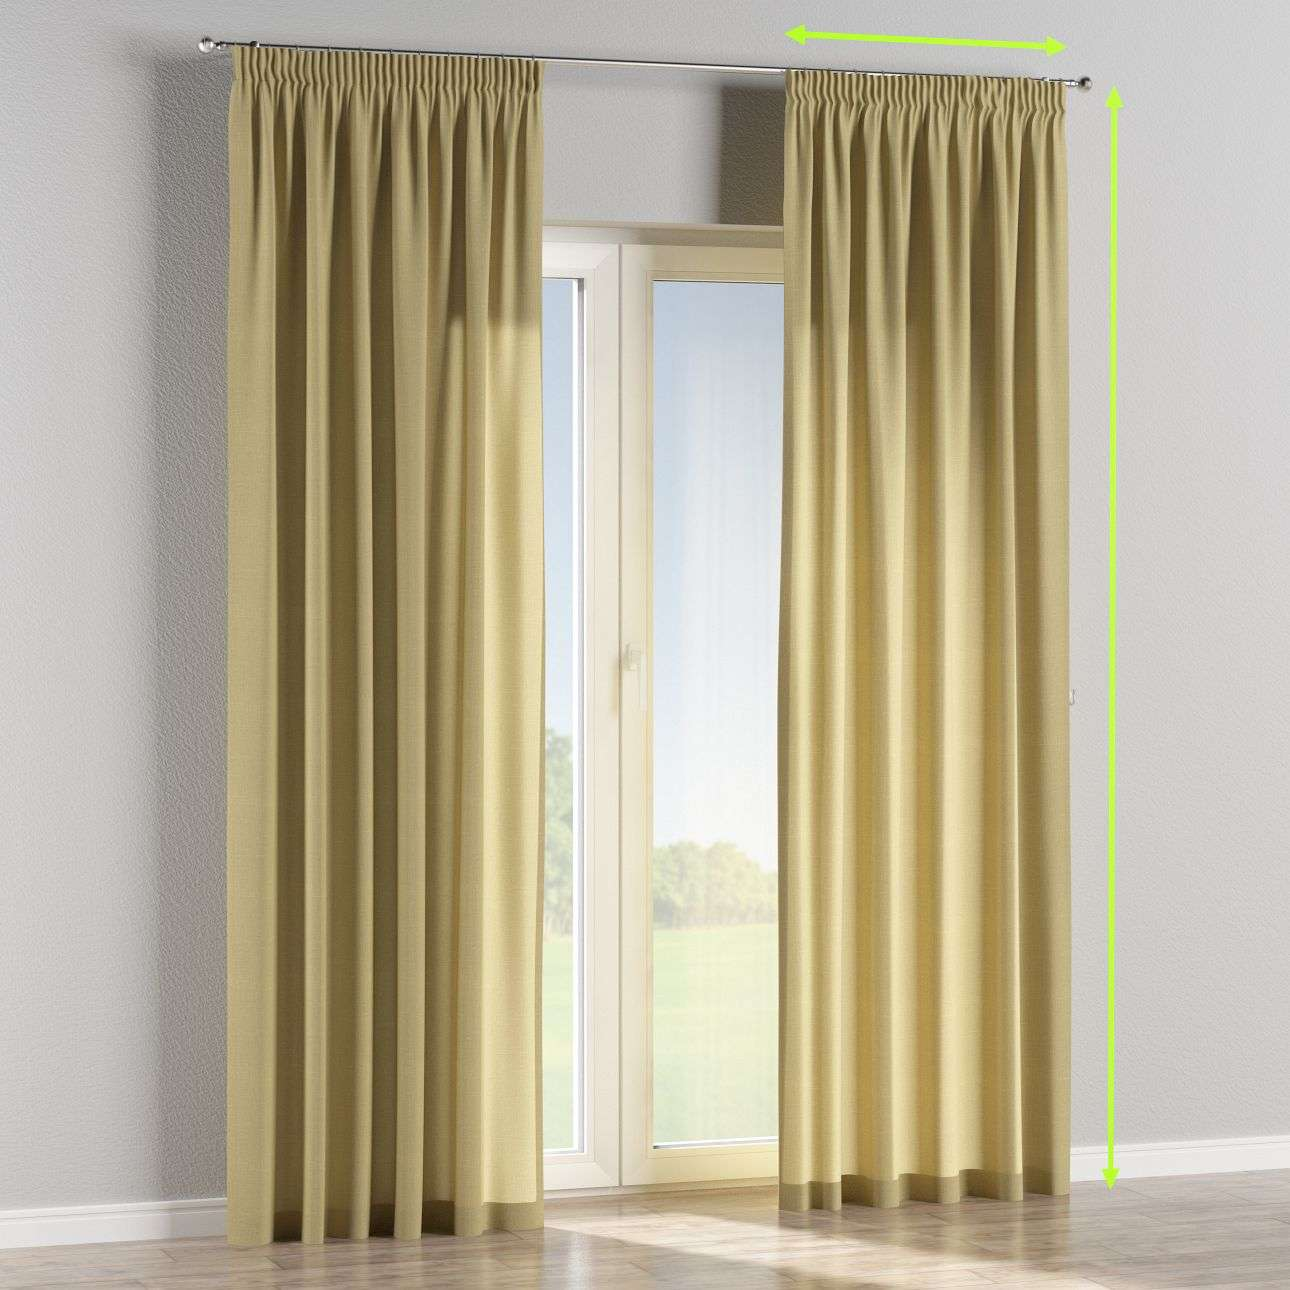 Pencil pleat curtains in collection Cardiff, fabric: 136-22